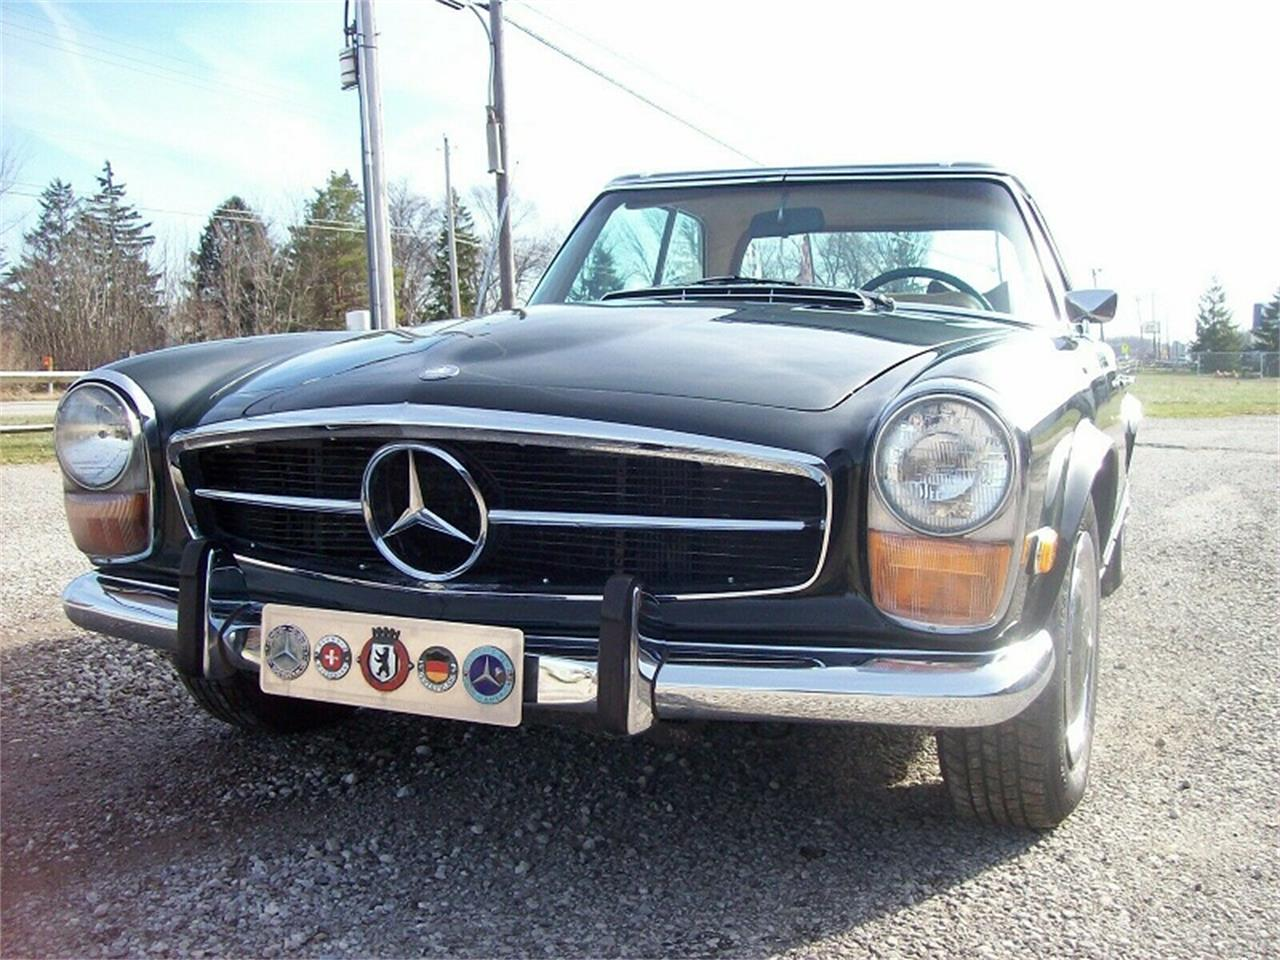 for sale 1971 mercedes-benz sl-class in los angeles, california cars - los angeles, ca at geebo